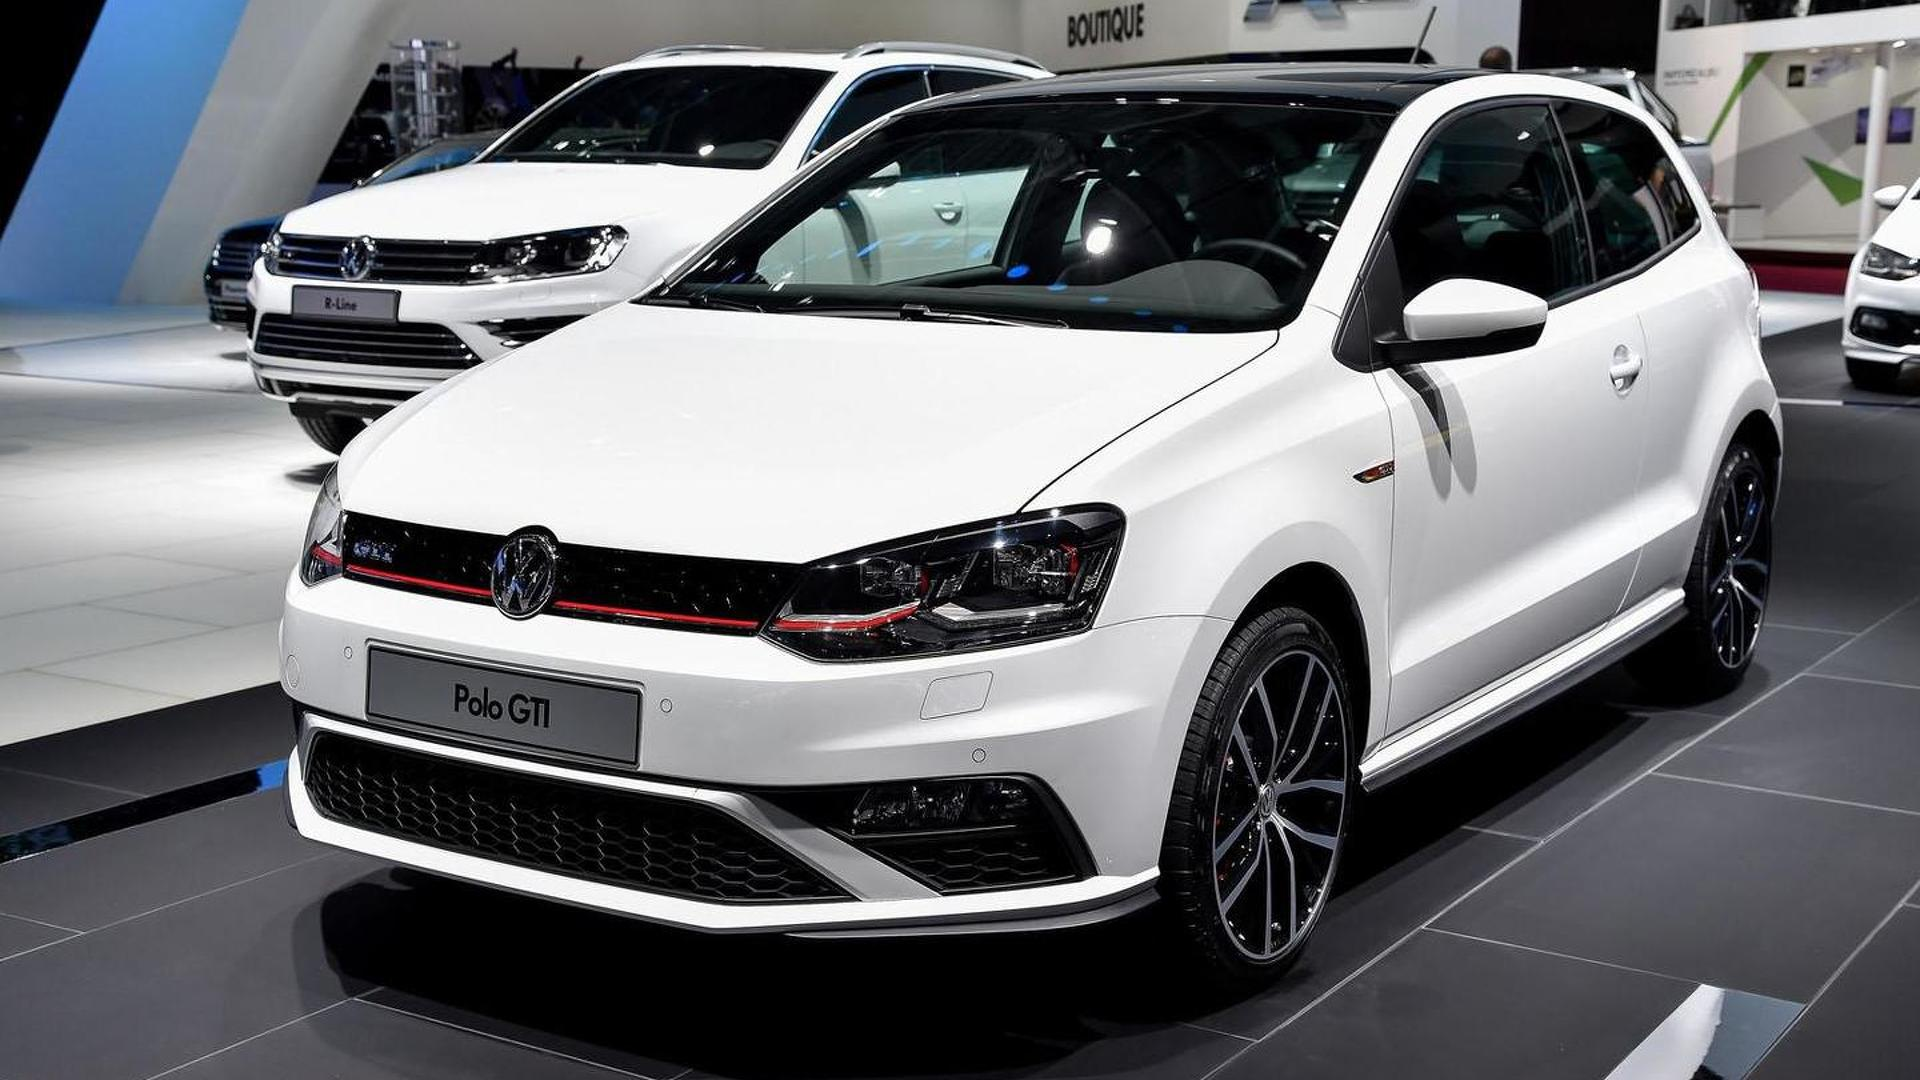 2015 Volkswagen Polo GTI debuts in Paris with a new engine